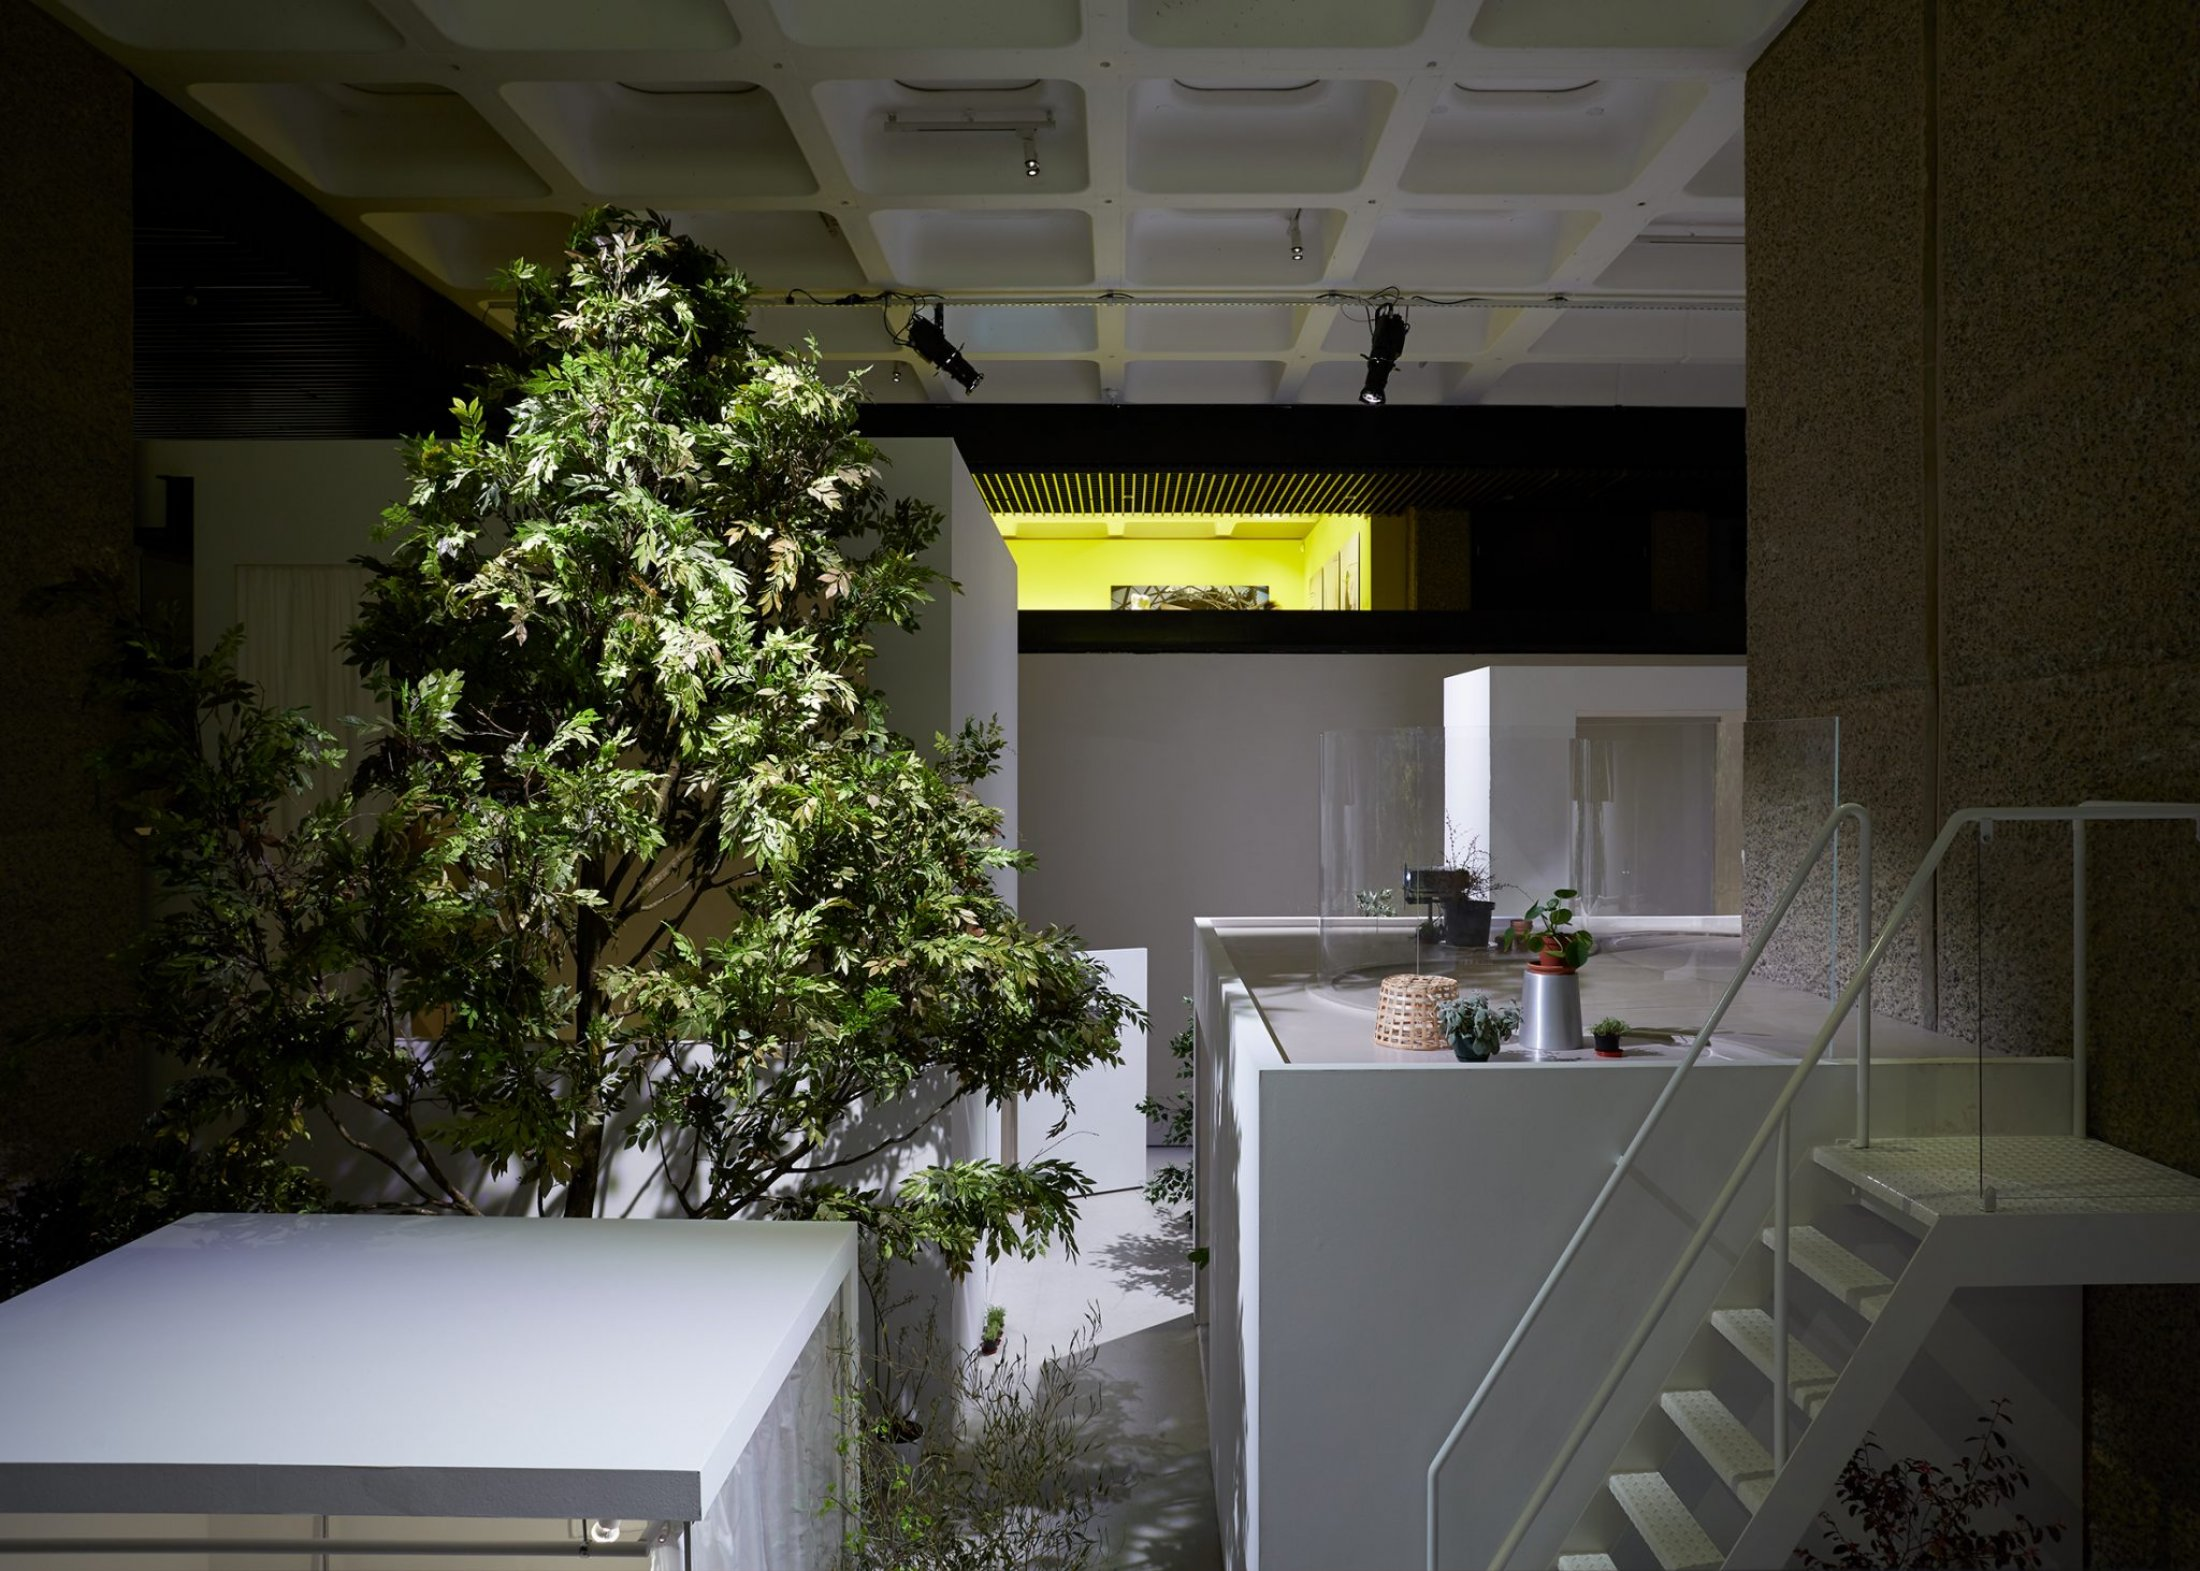 Thomas Adank - The Japanese House at the Barbican